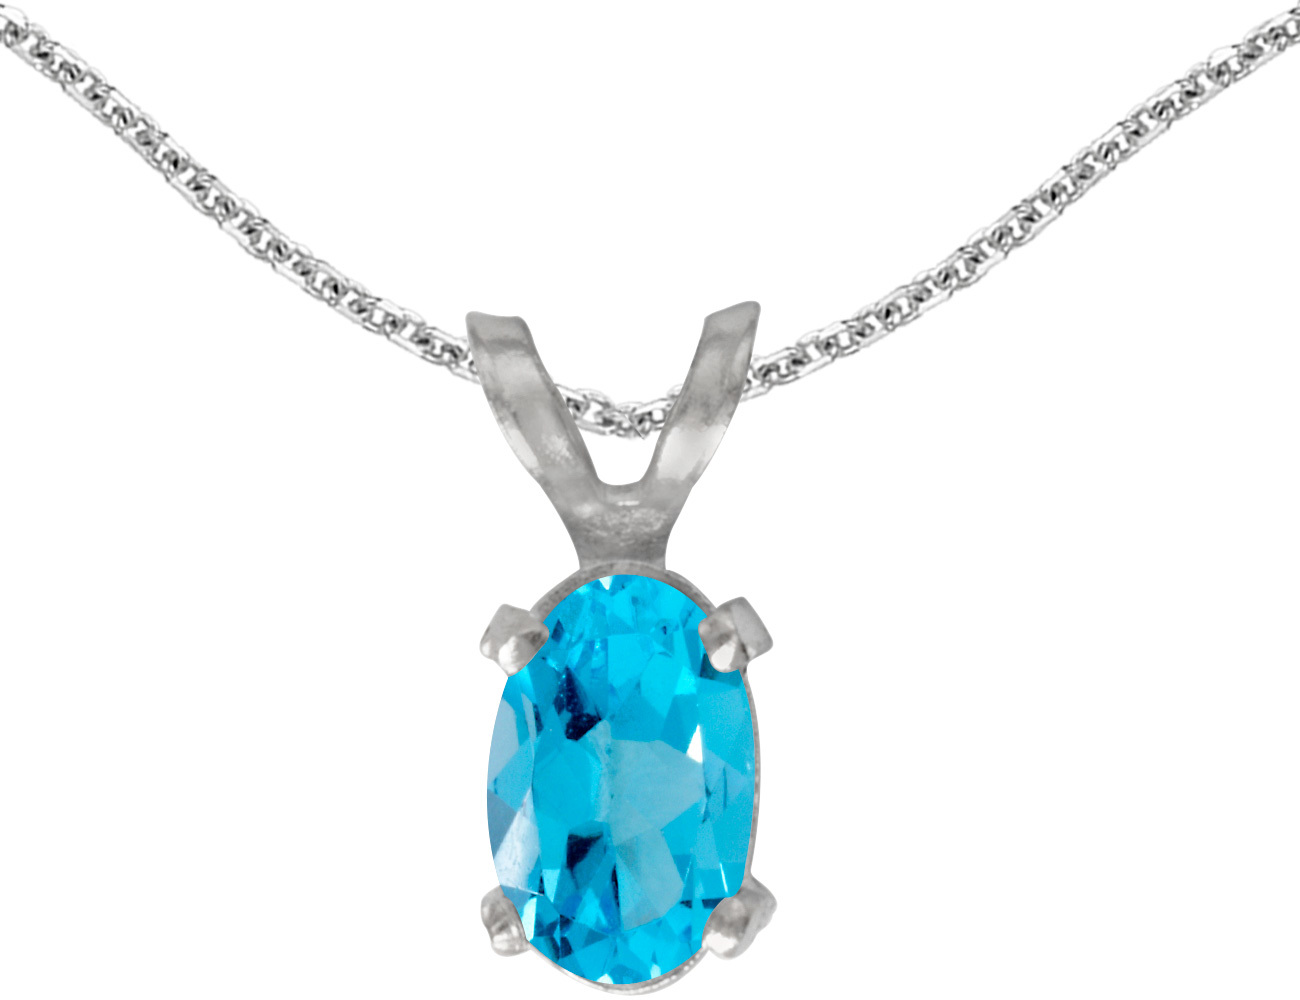 14k White Gold Oval Blue Topaz Pendant (Chain NOT included)